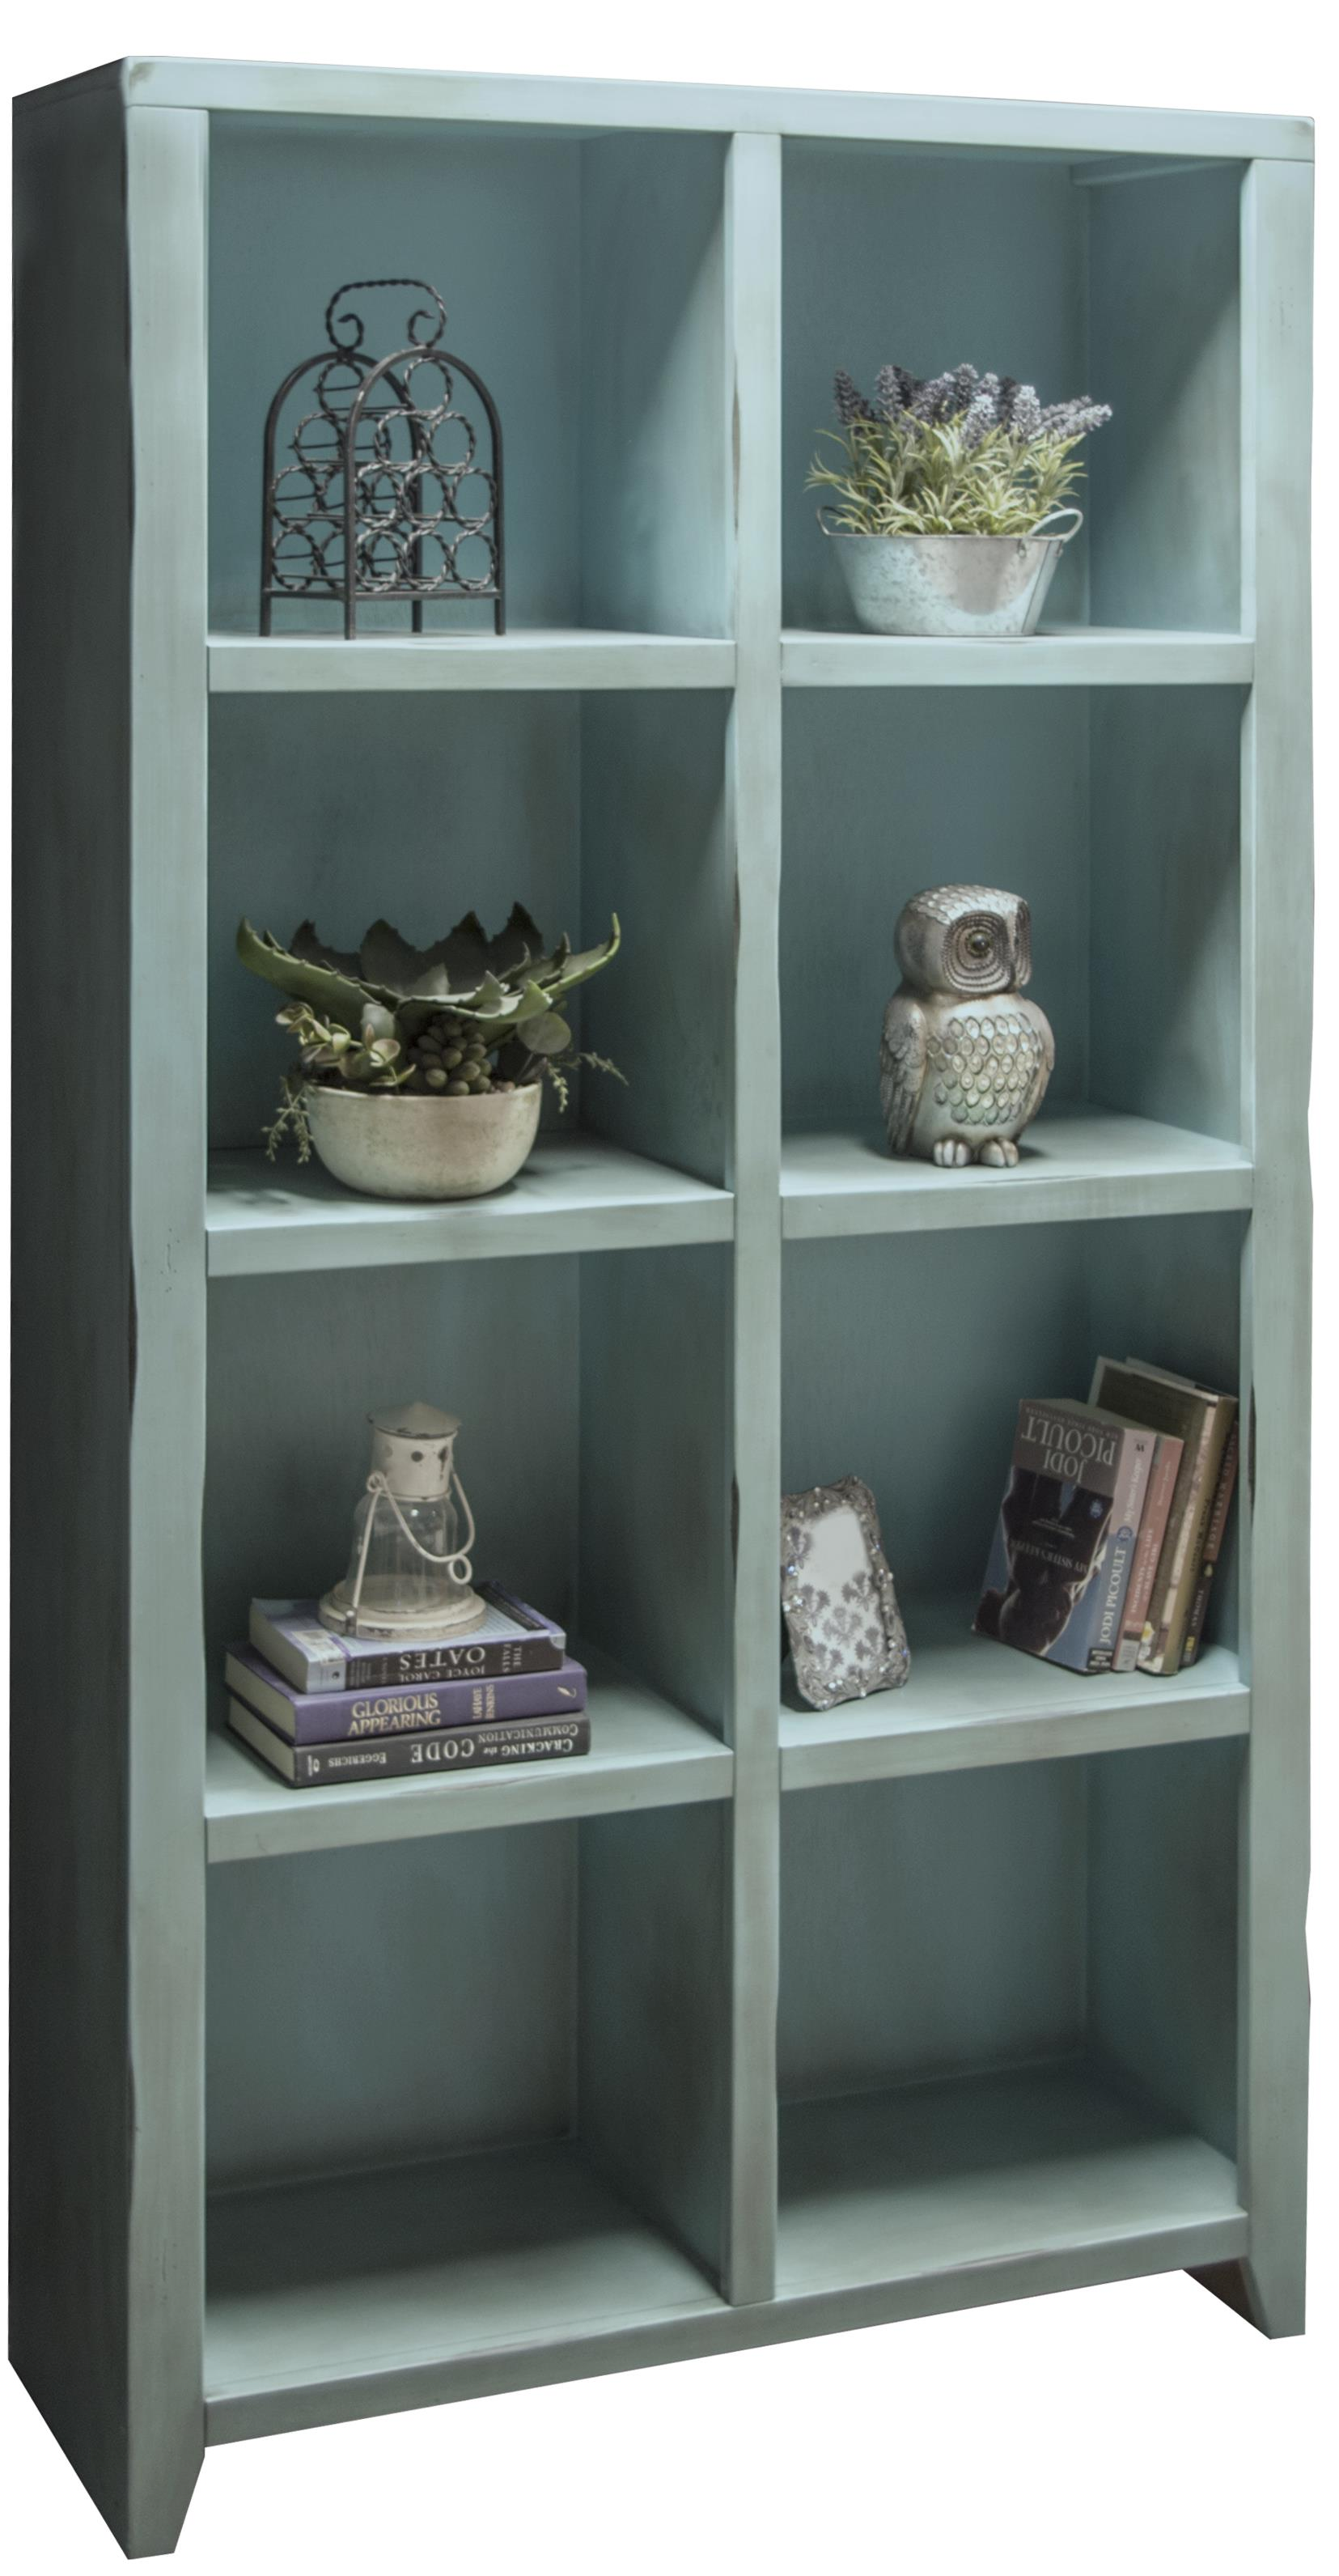 Legends Furniture Calistoga Collection Calistoga 8-Cubicle Bookcase - Item Number: CA6202-RBL